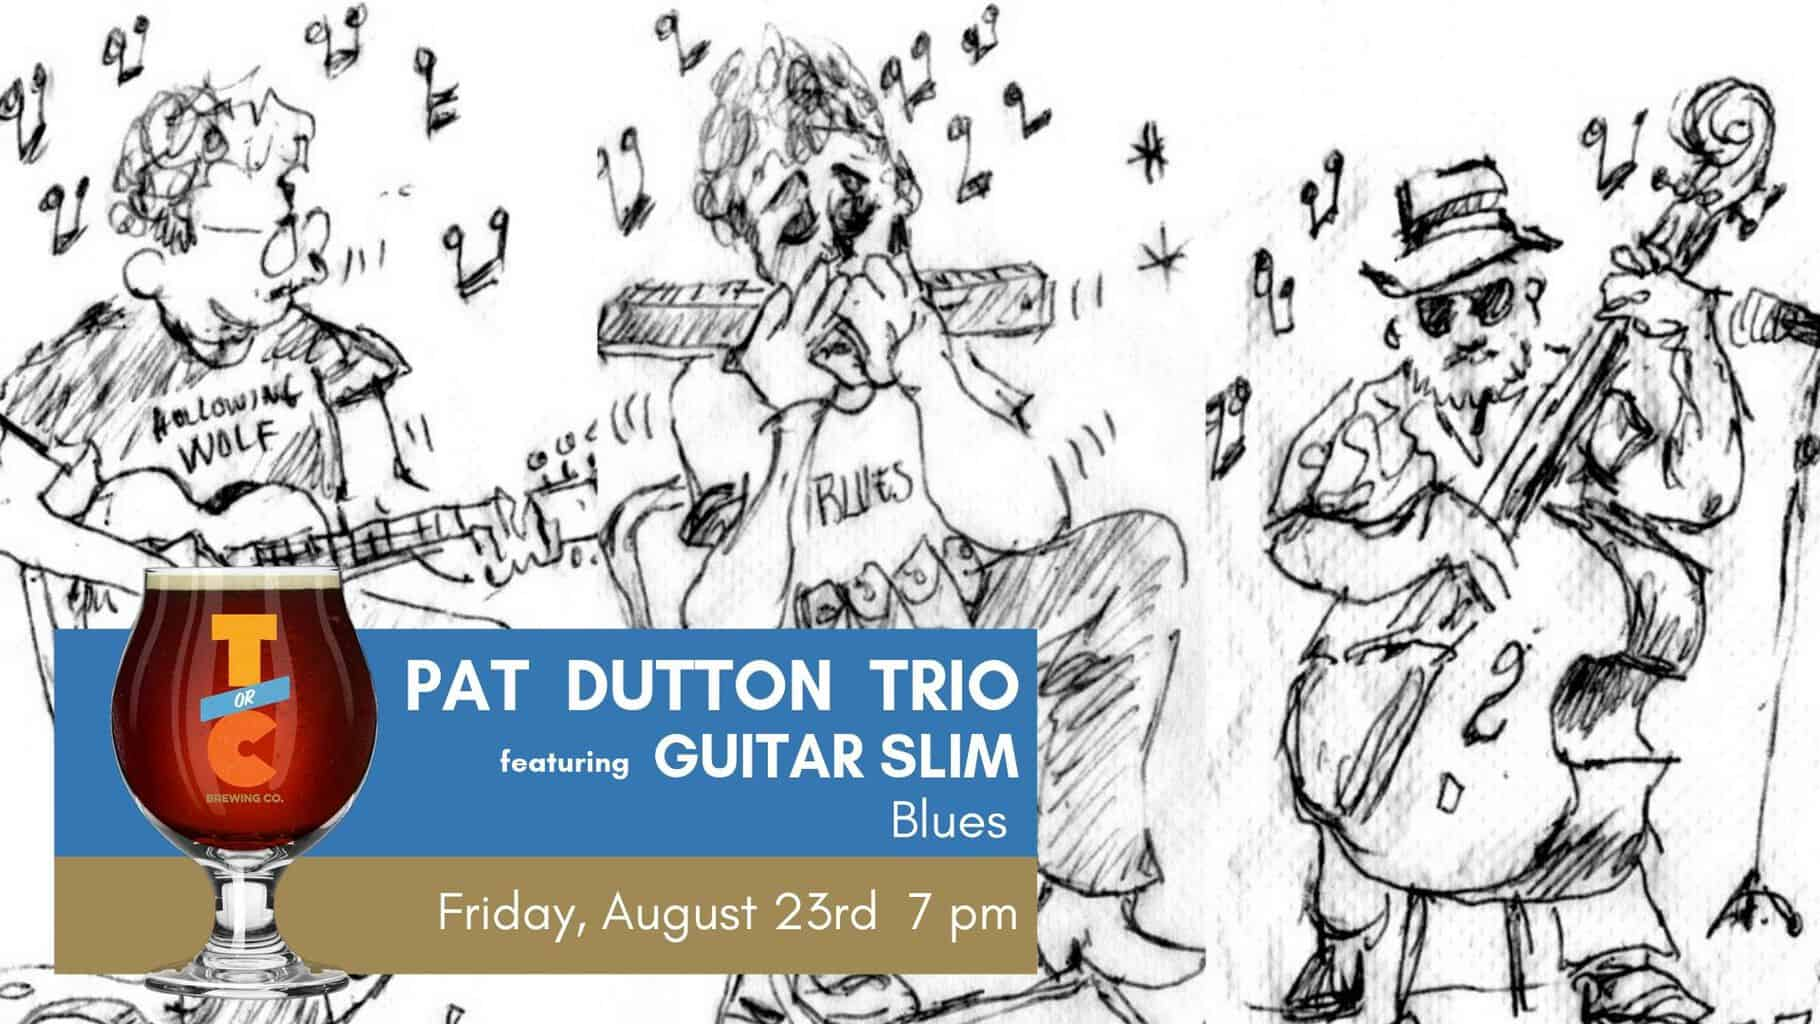 Pat Dutton Trio featuring Guitar Slim